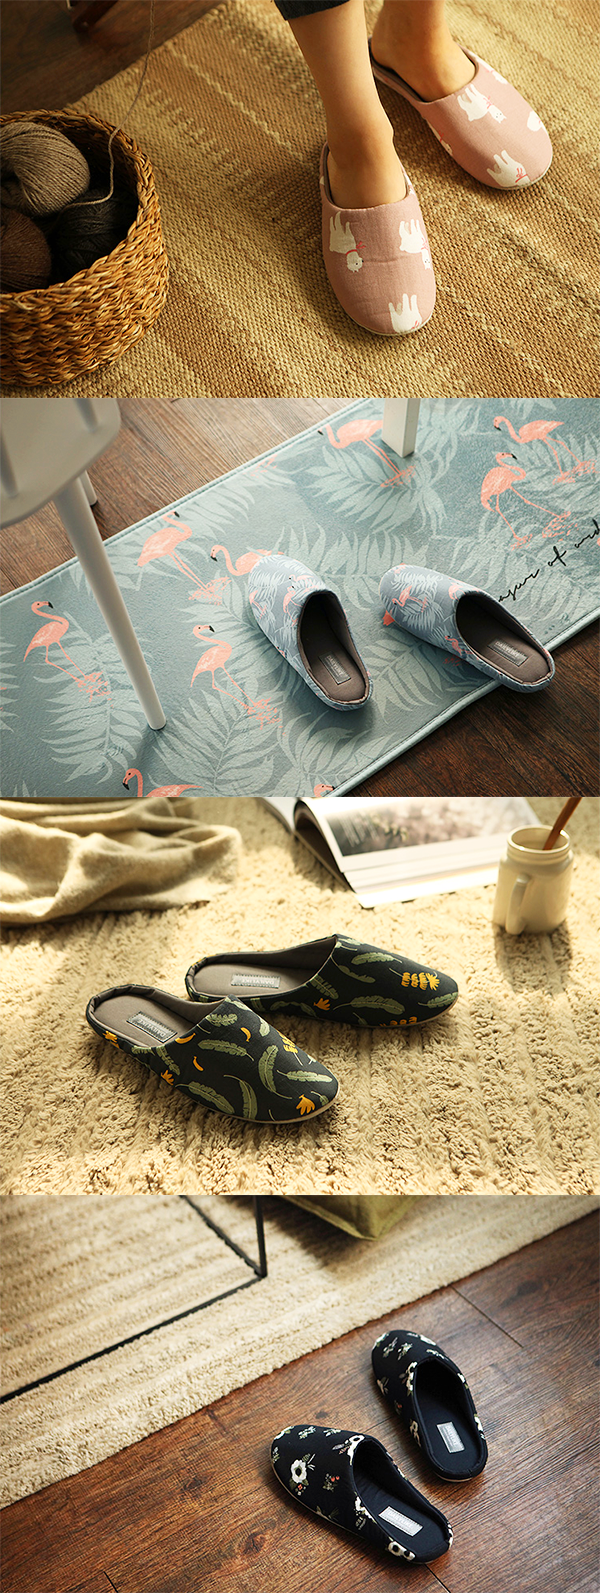 Cuteness and comfort for your feet! These Dailylike Indoor Pattern Slippers look great, matching your home decor and feng shui.